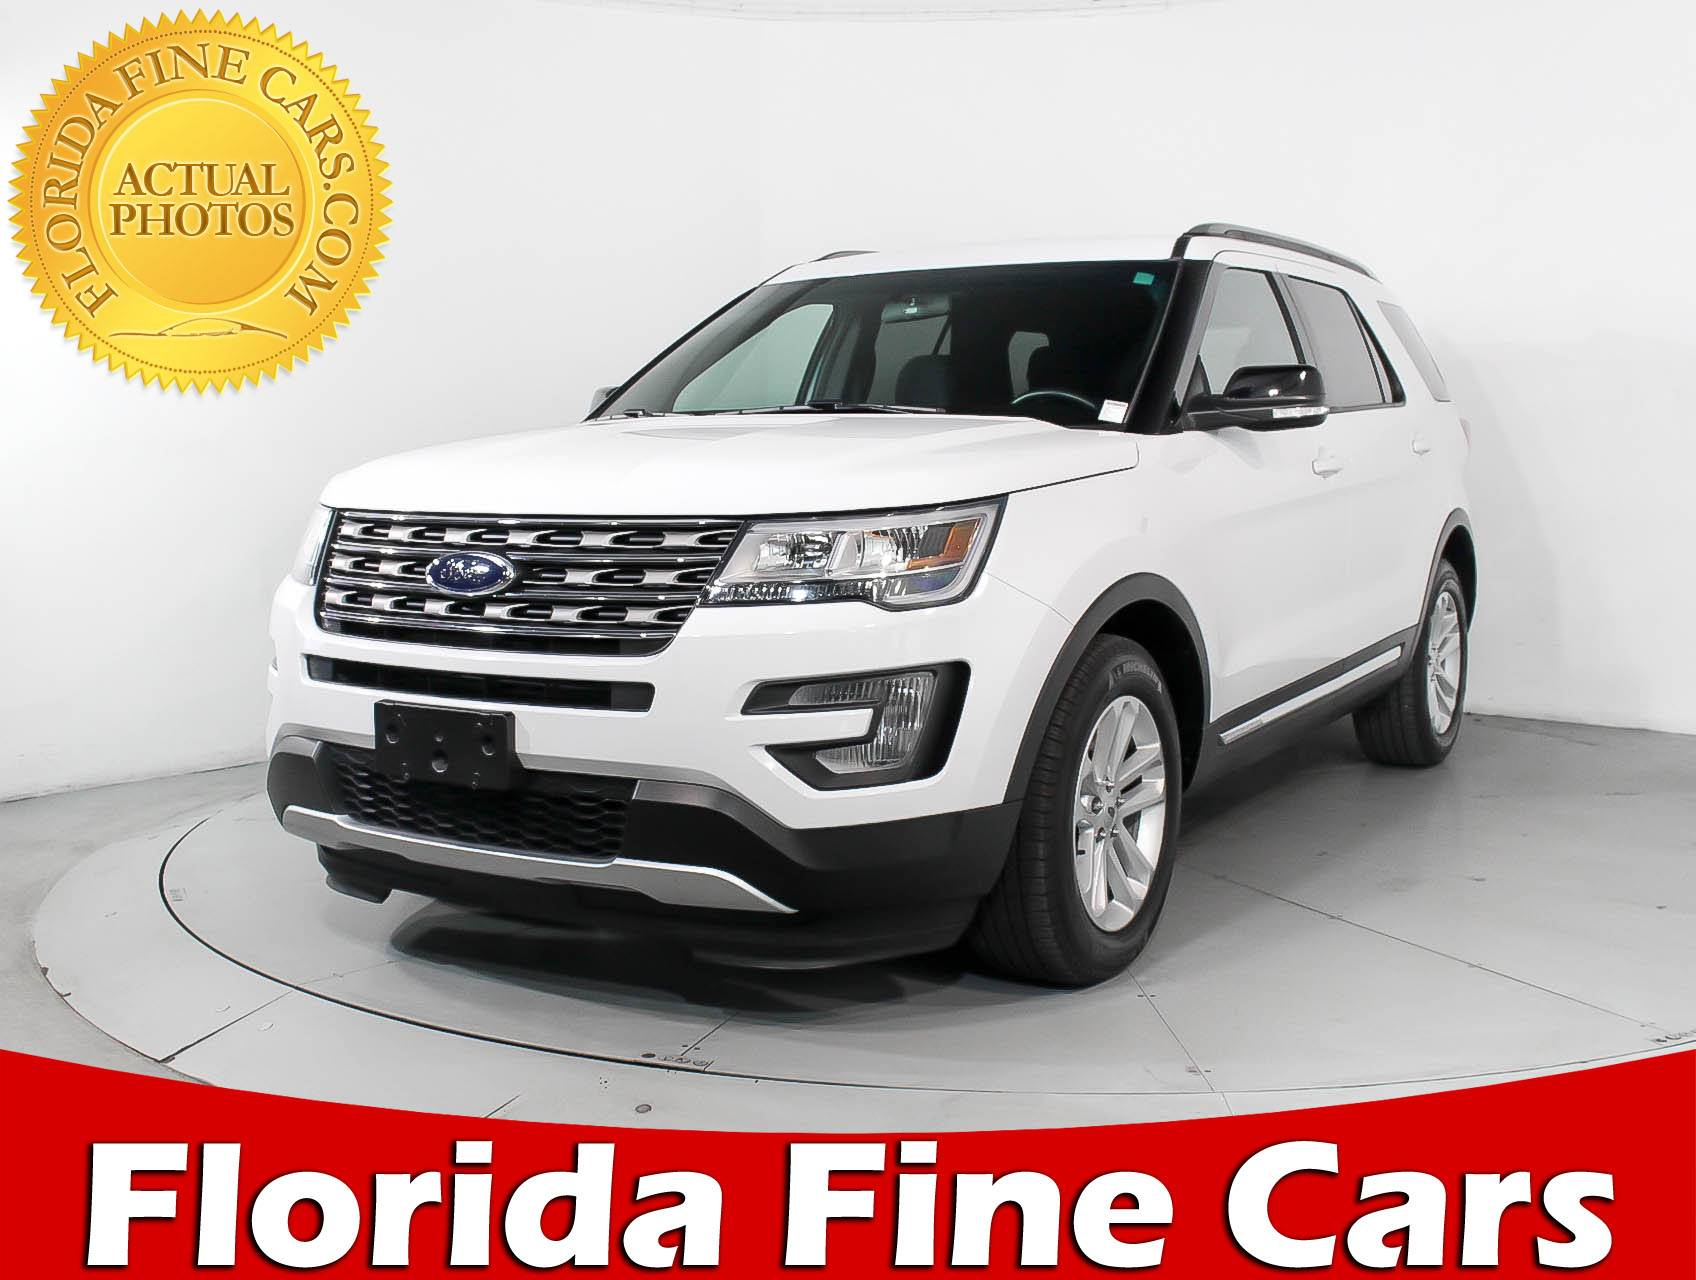 Used 2017 FORD EXPLORER XLT SUV for sale in HOLLYWOOD FL